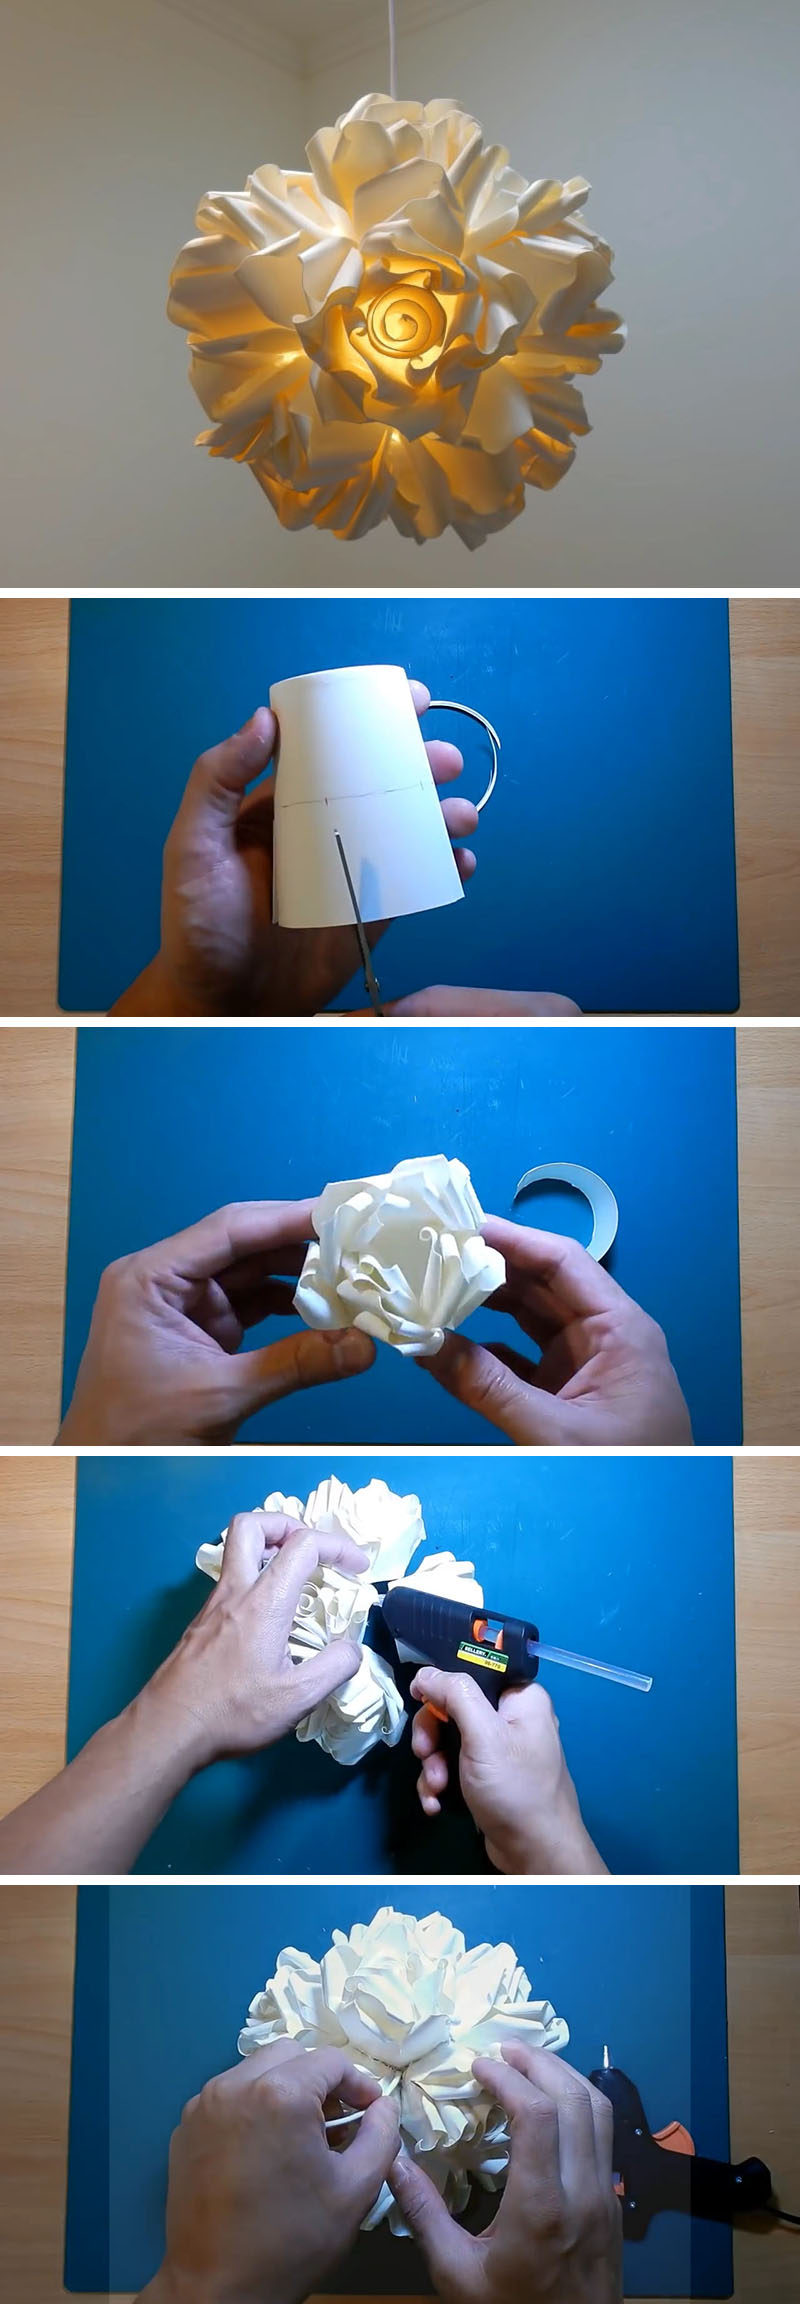 Create this artistic DIY paper rose pendant lamp. Individual paper roses are created by cutting, rolling, bending and gluing paper cups, that are then arranged and glued to form a lampshade.